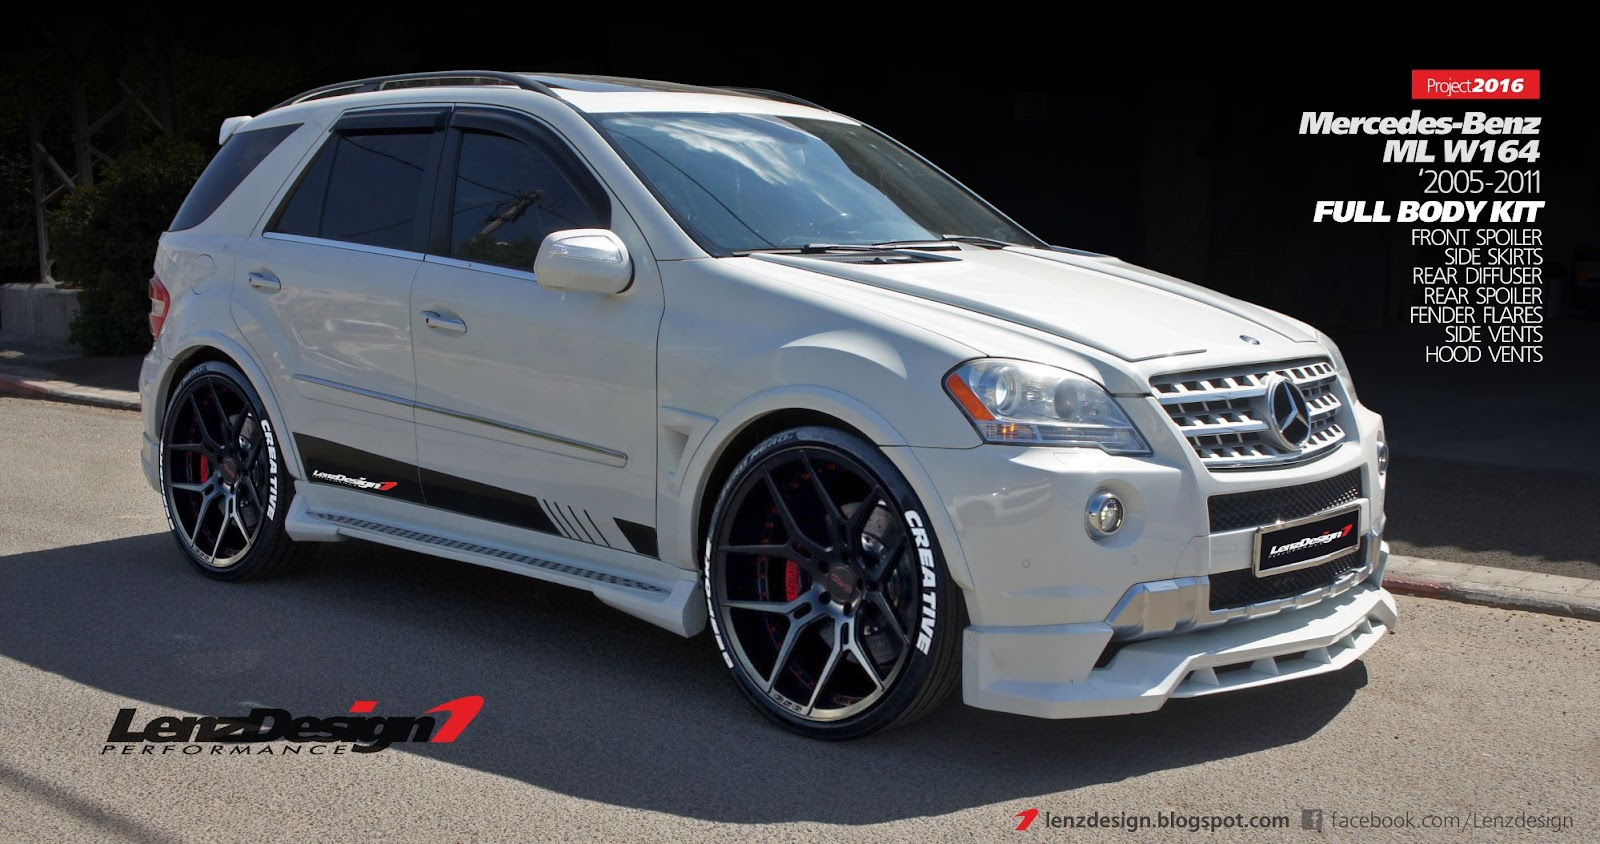 Mercedes benz ml w164 tuning wide body kit lenzdesign for Ml mercedes benz